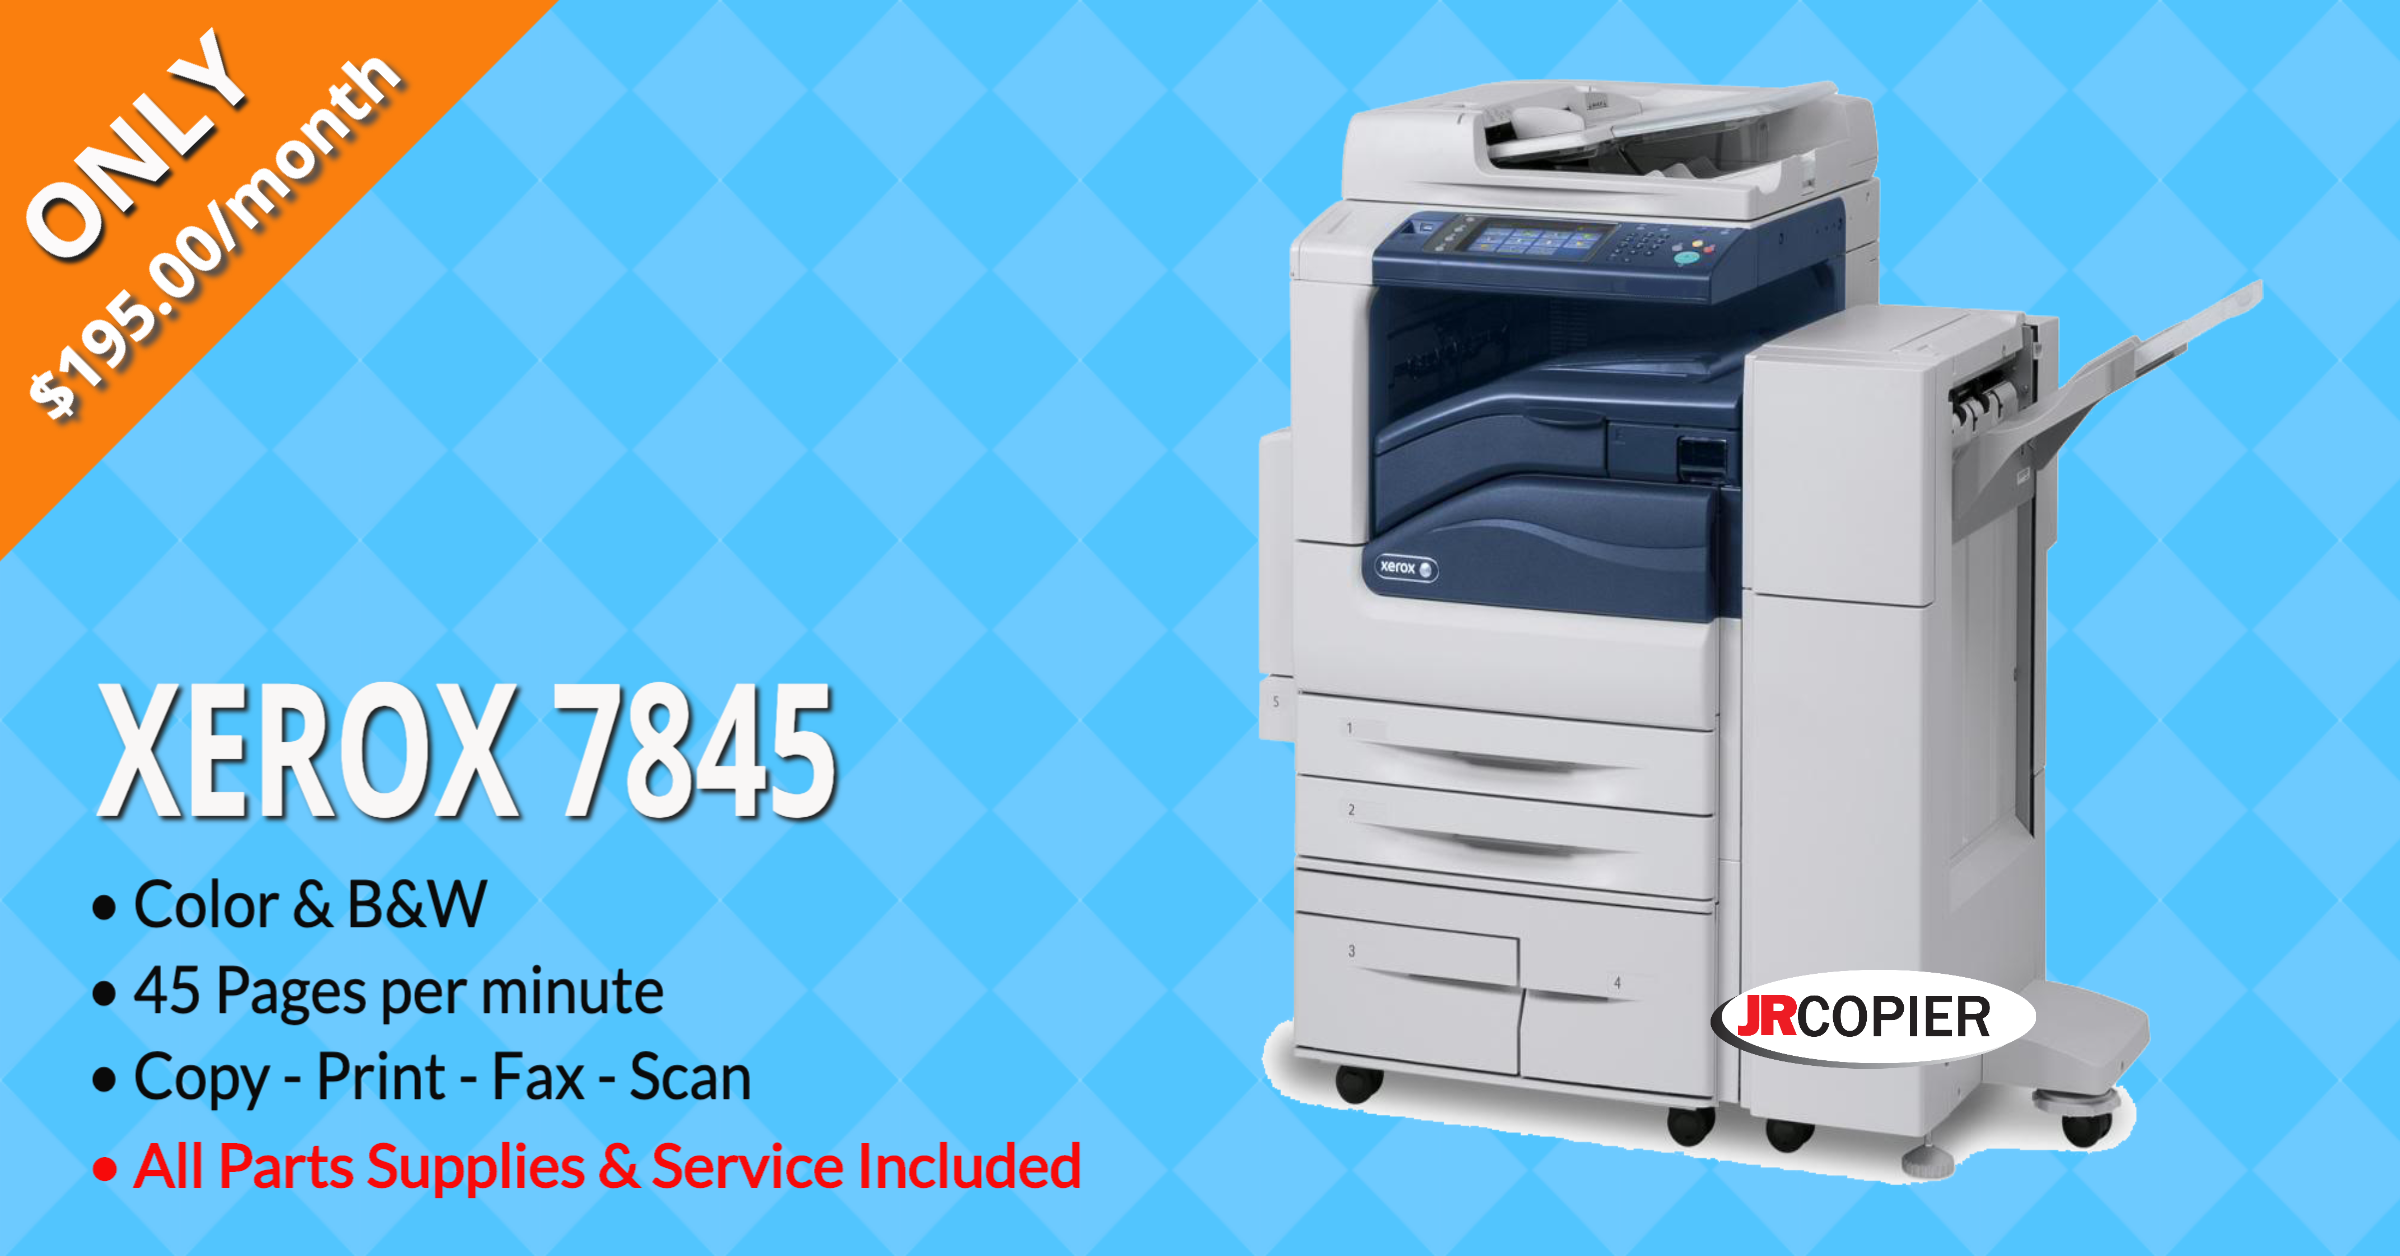 Color Printer 34229, 34272, 34275